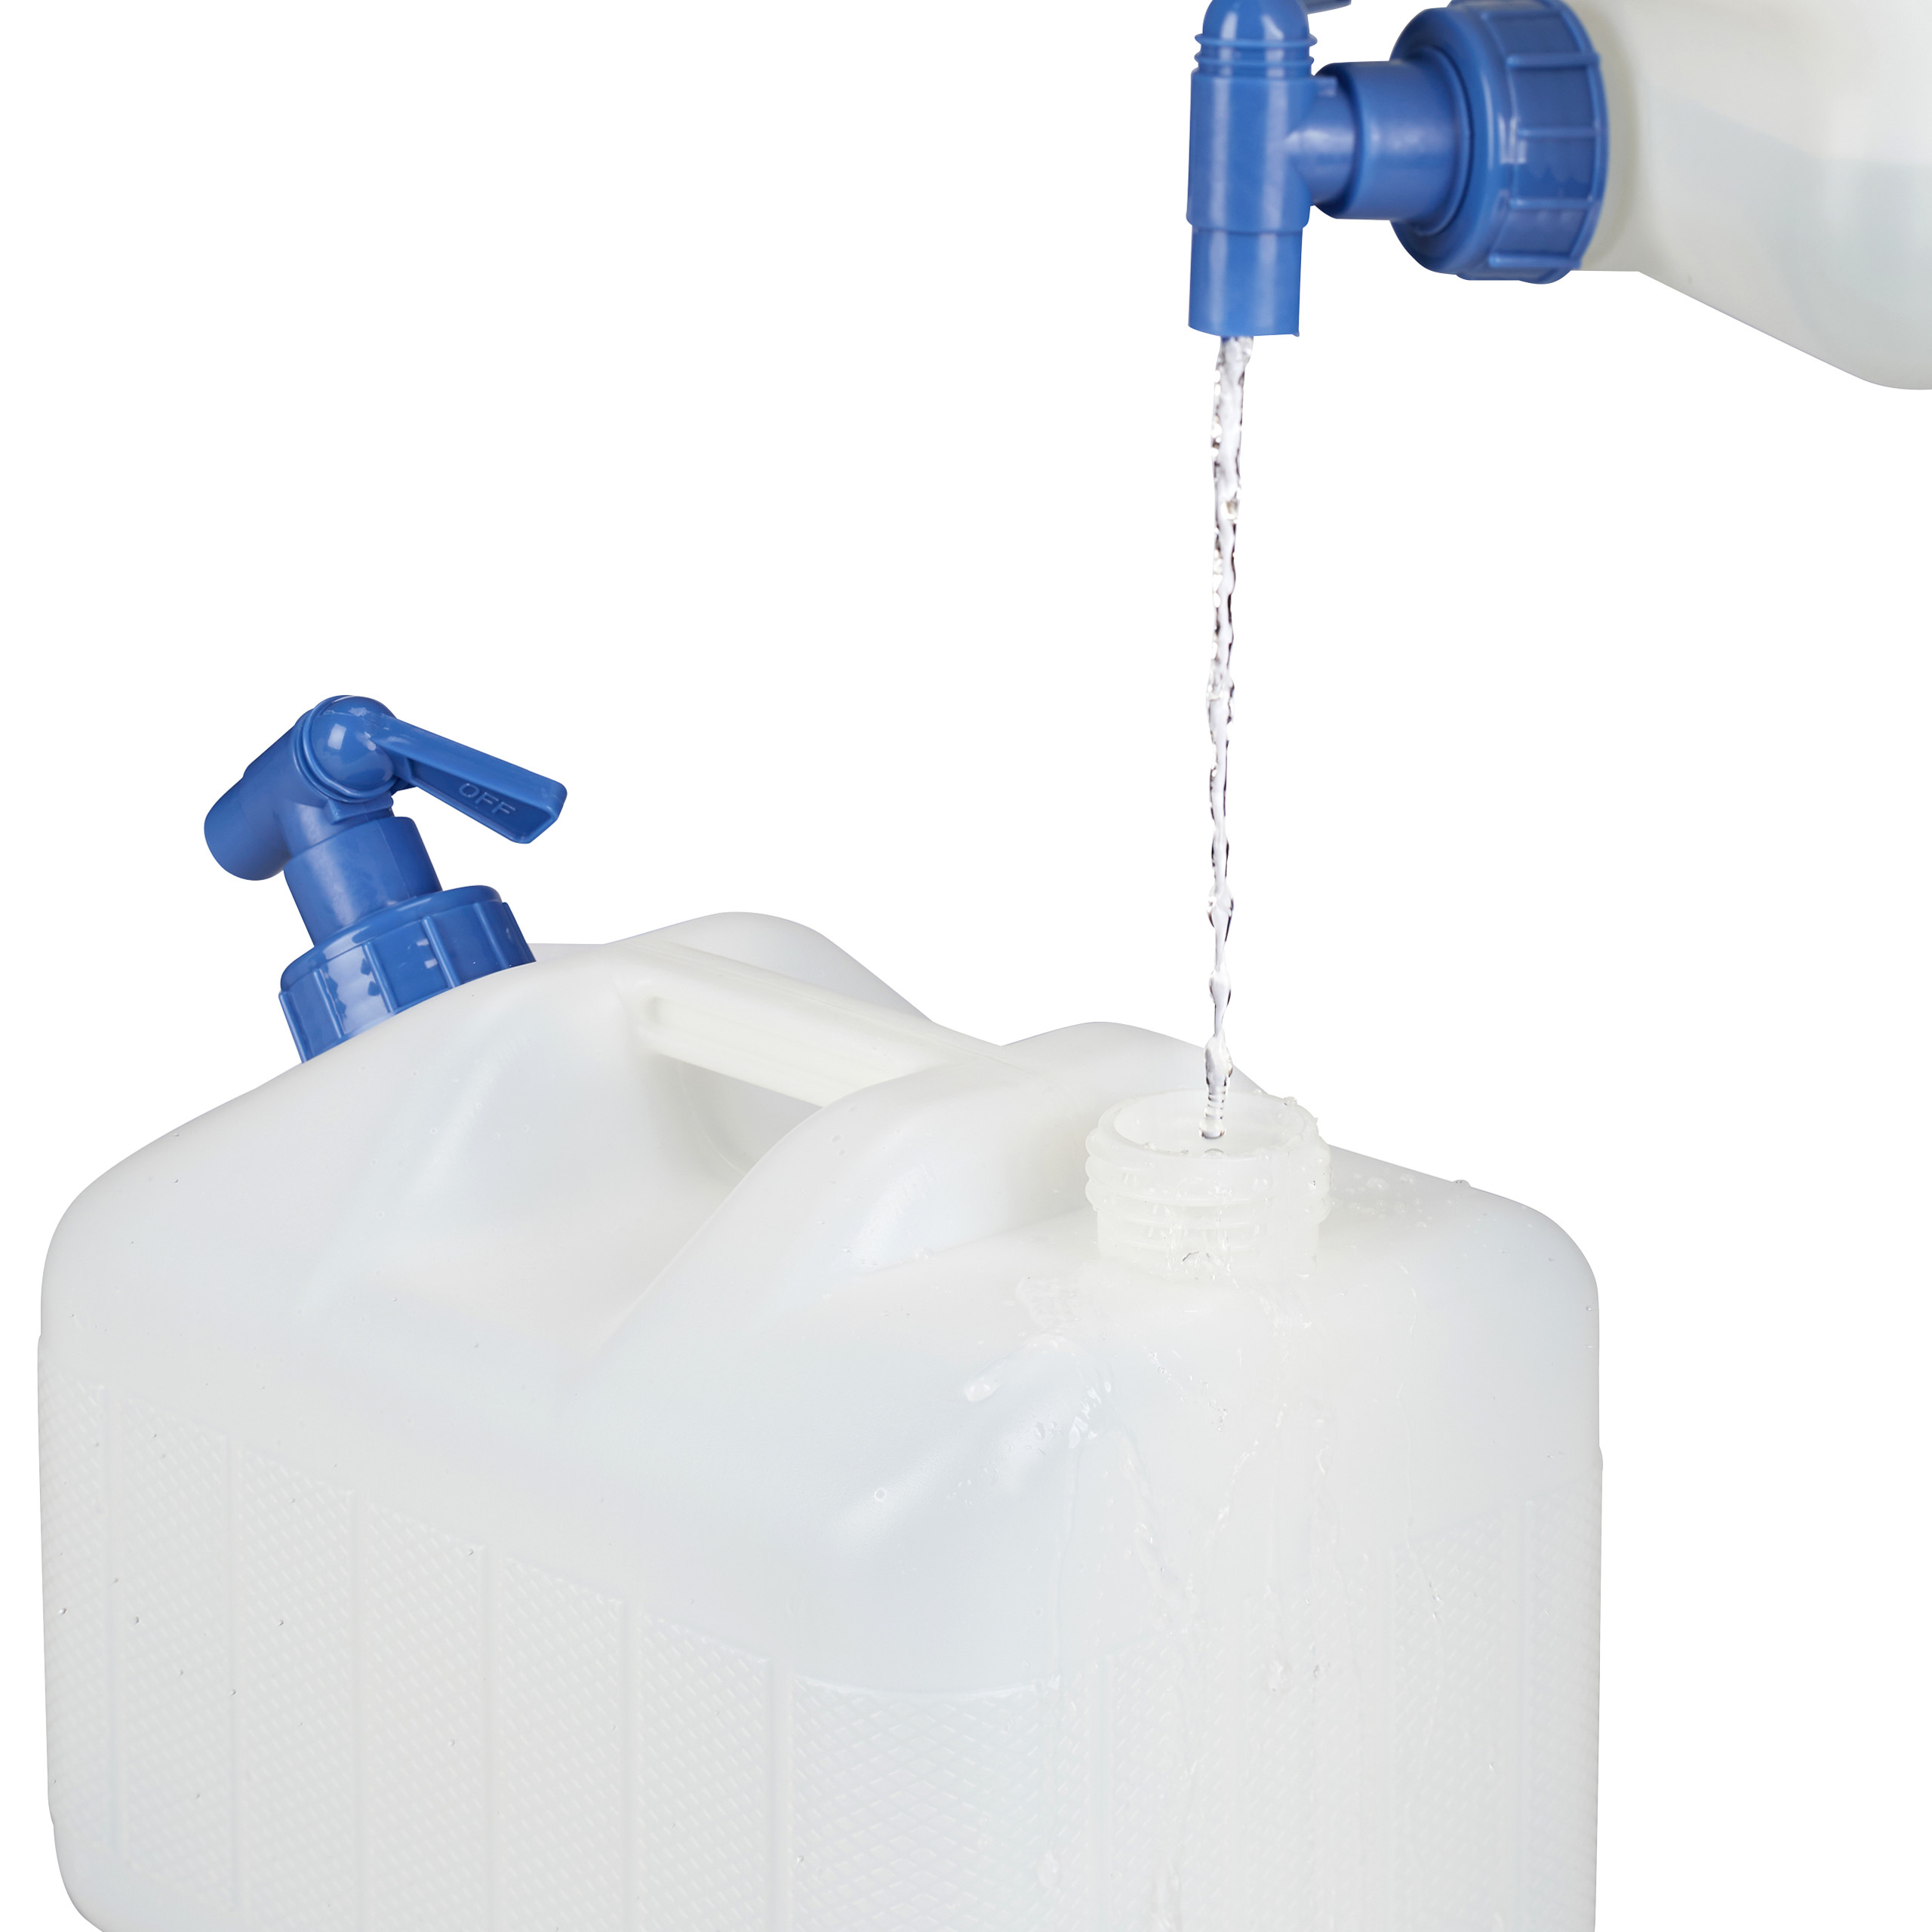 thumbnail 13 - Water Canister, Spigot, Jerrycan, Water Jug, Plastic Container